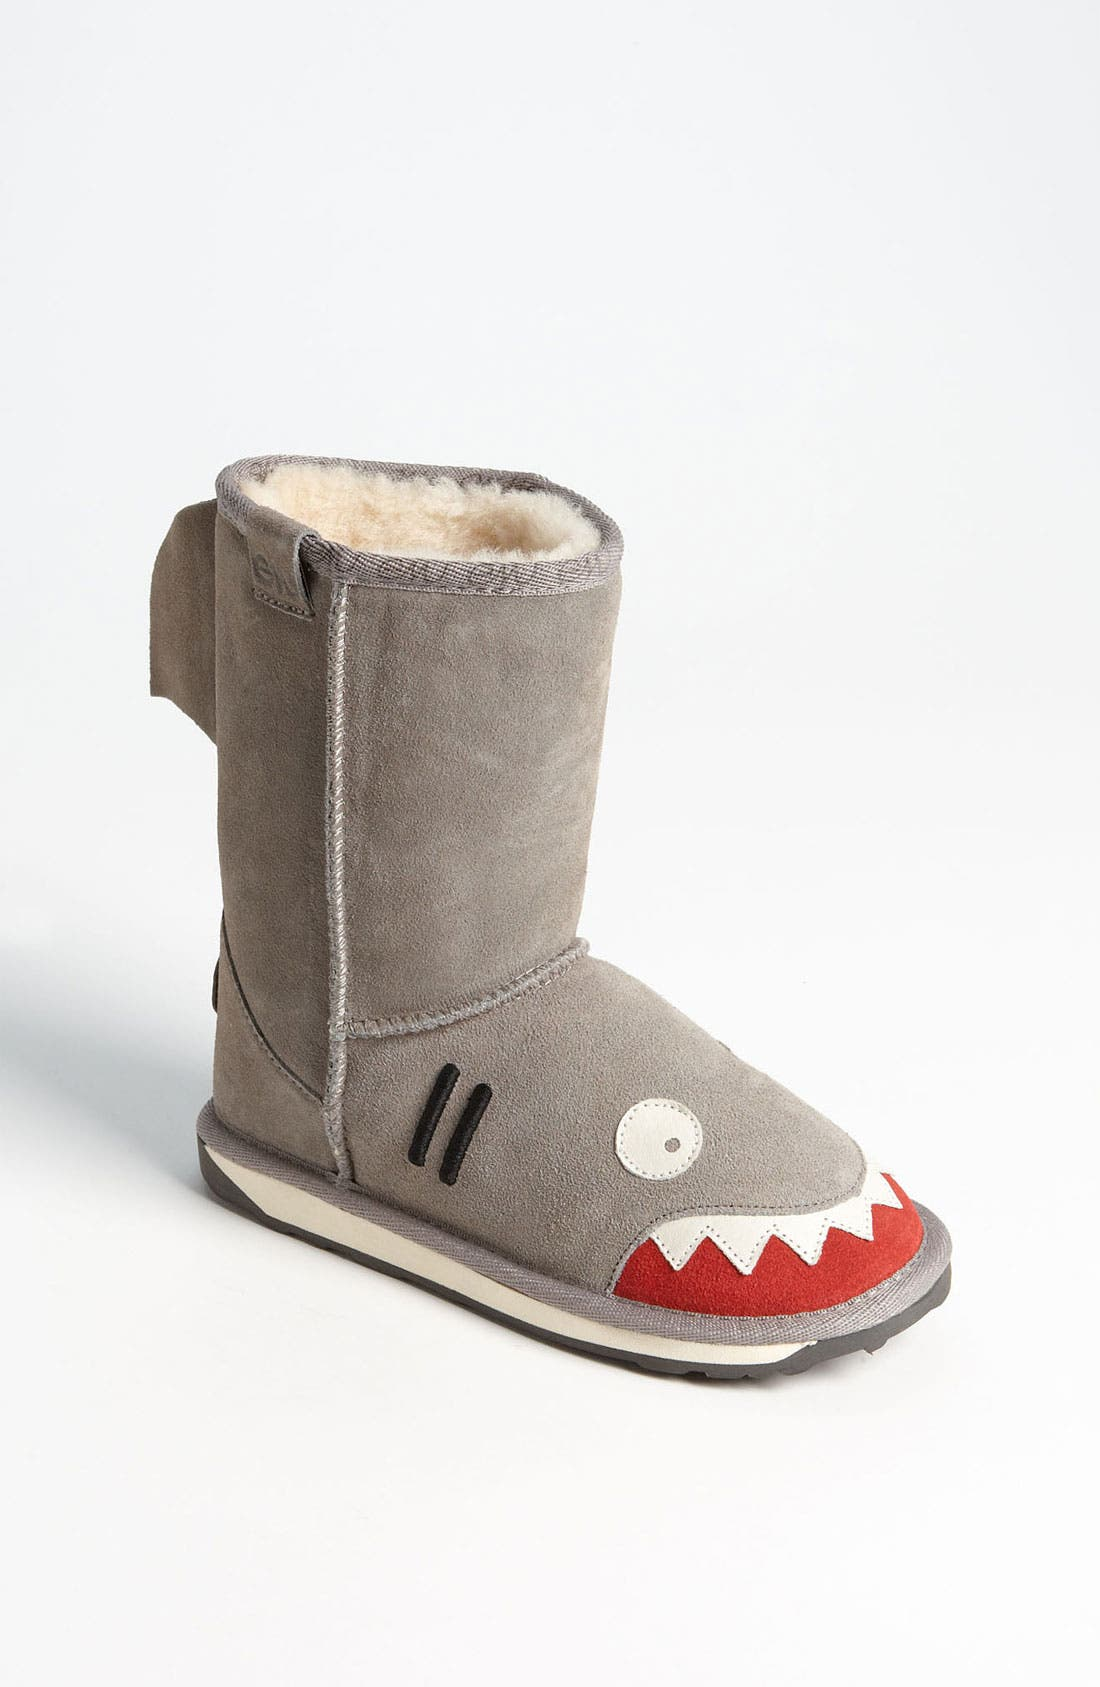 Alternate Image 1 Selected - EMU Australia 'Little Creatures - Shark' Boot (Toddler, Little Kid & Big Kid)